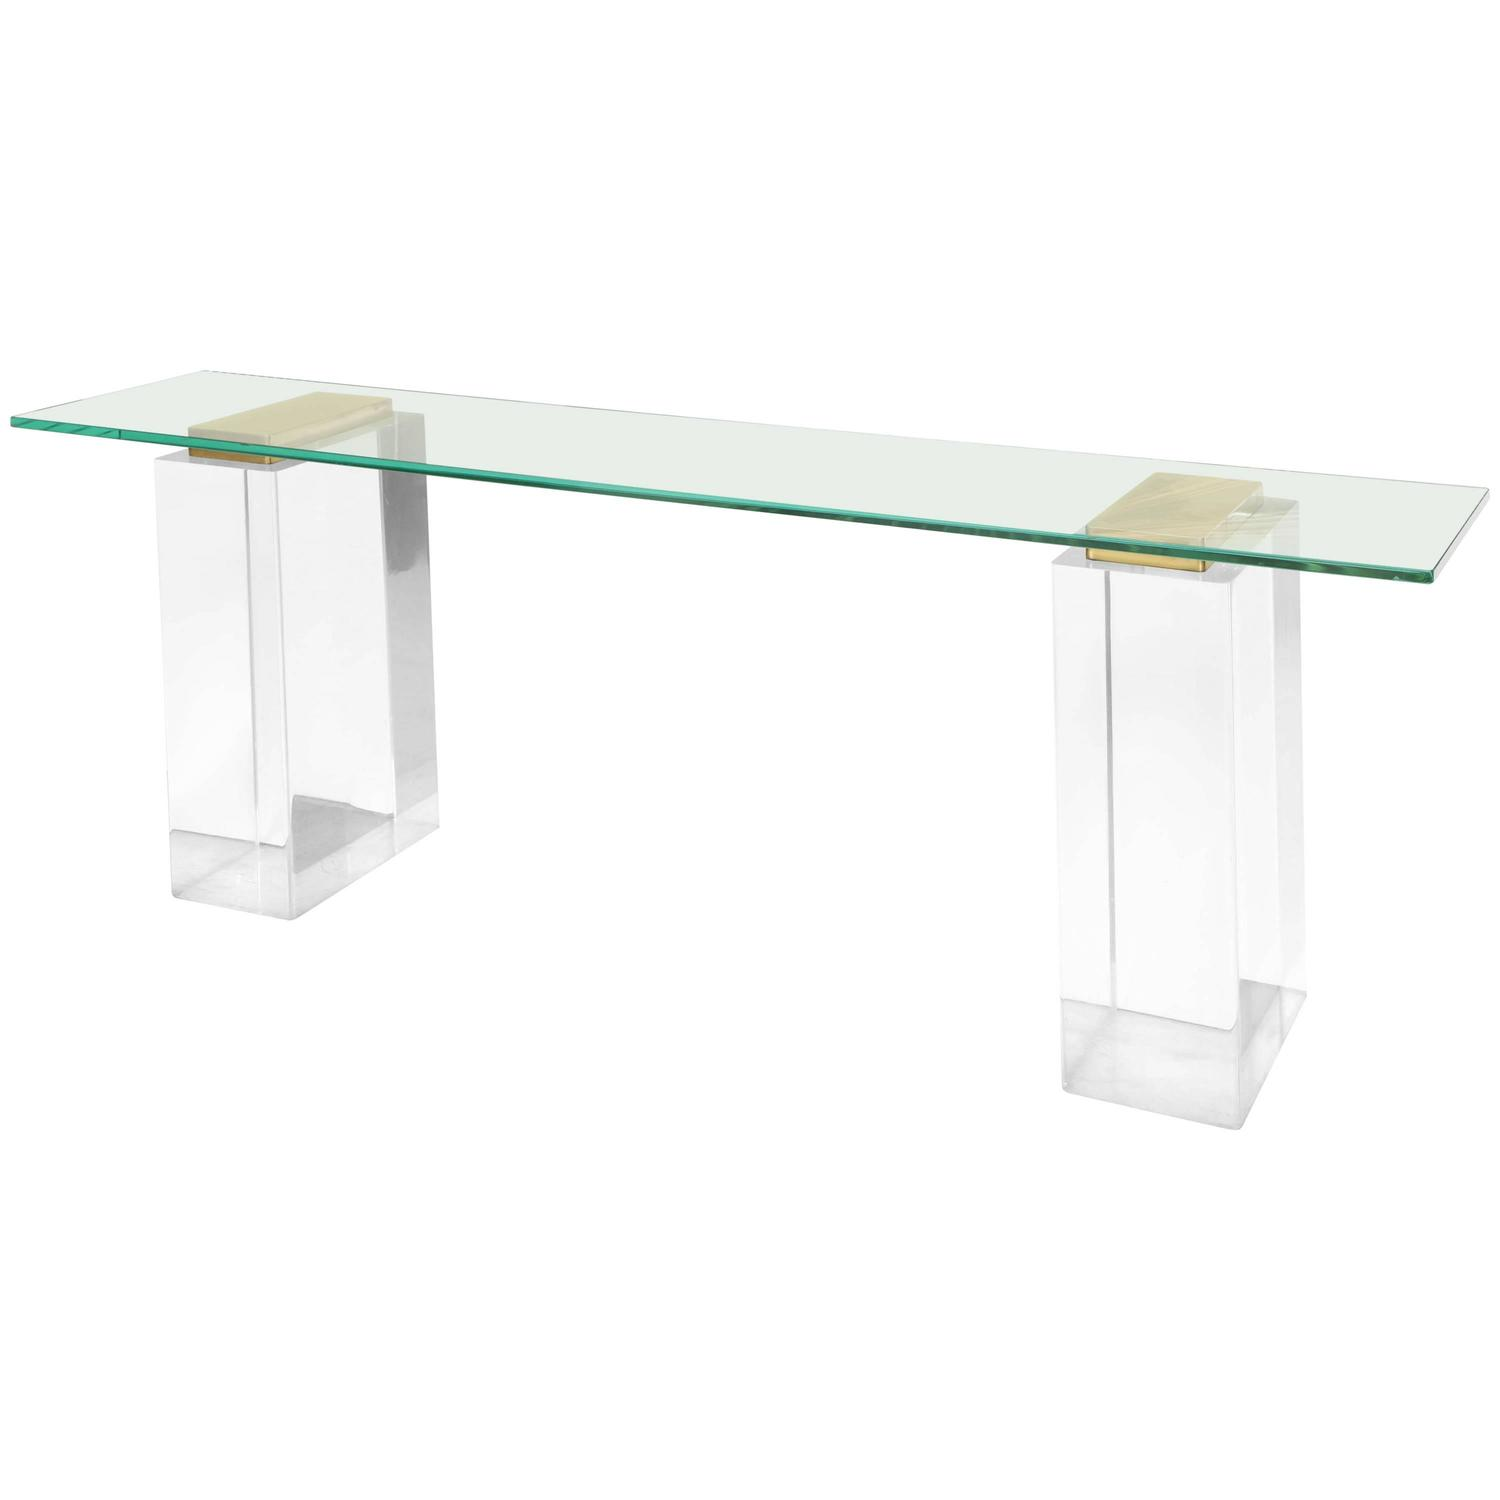 Lucite console table with massive solid lucite columns for for Small acrylic console table